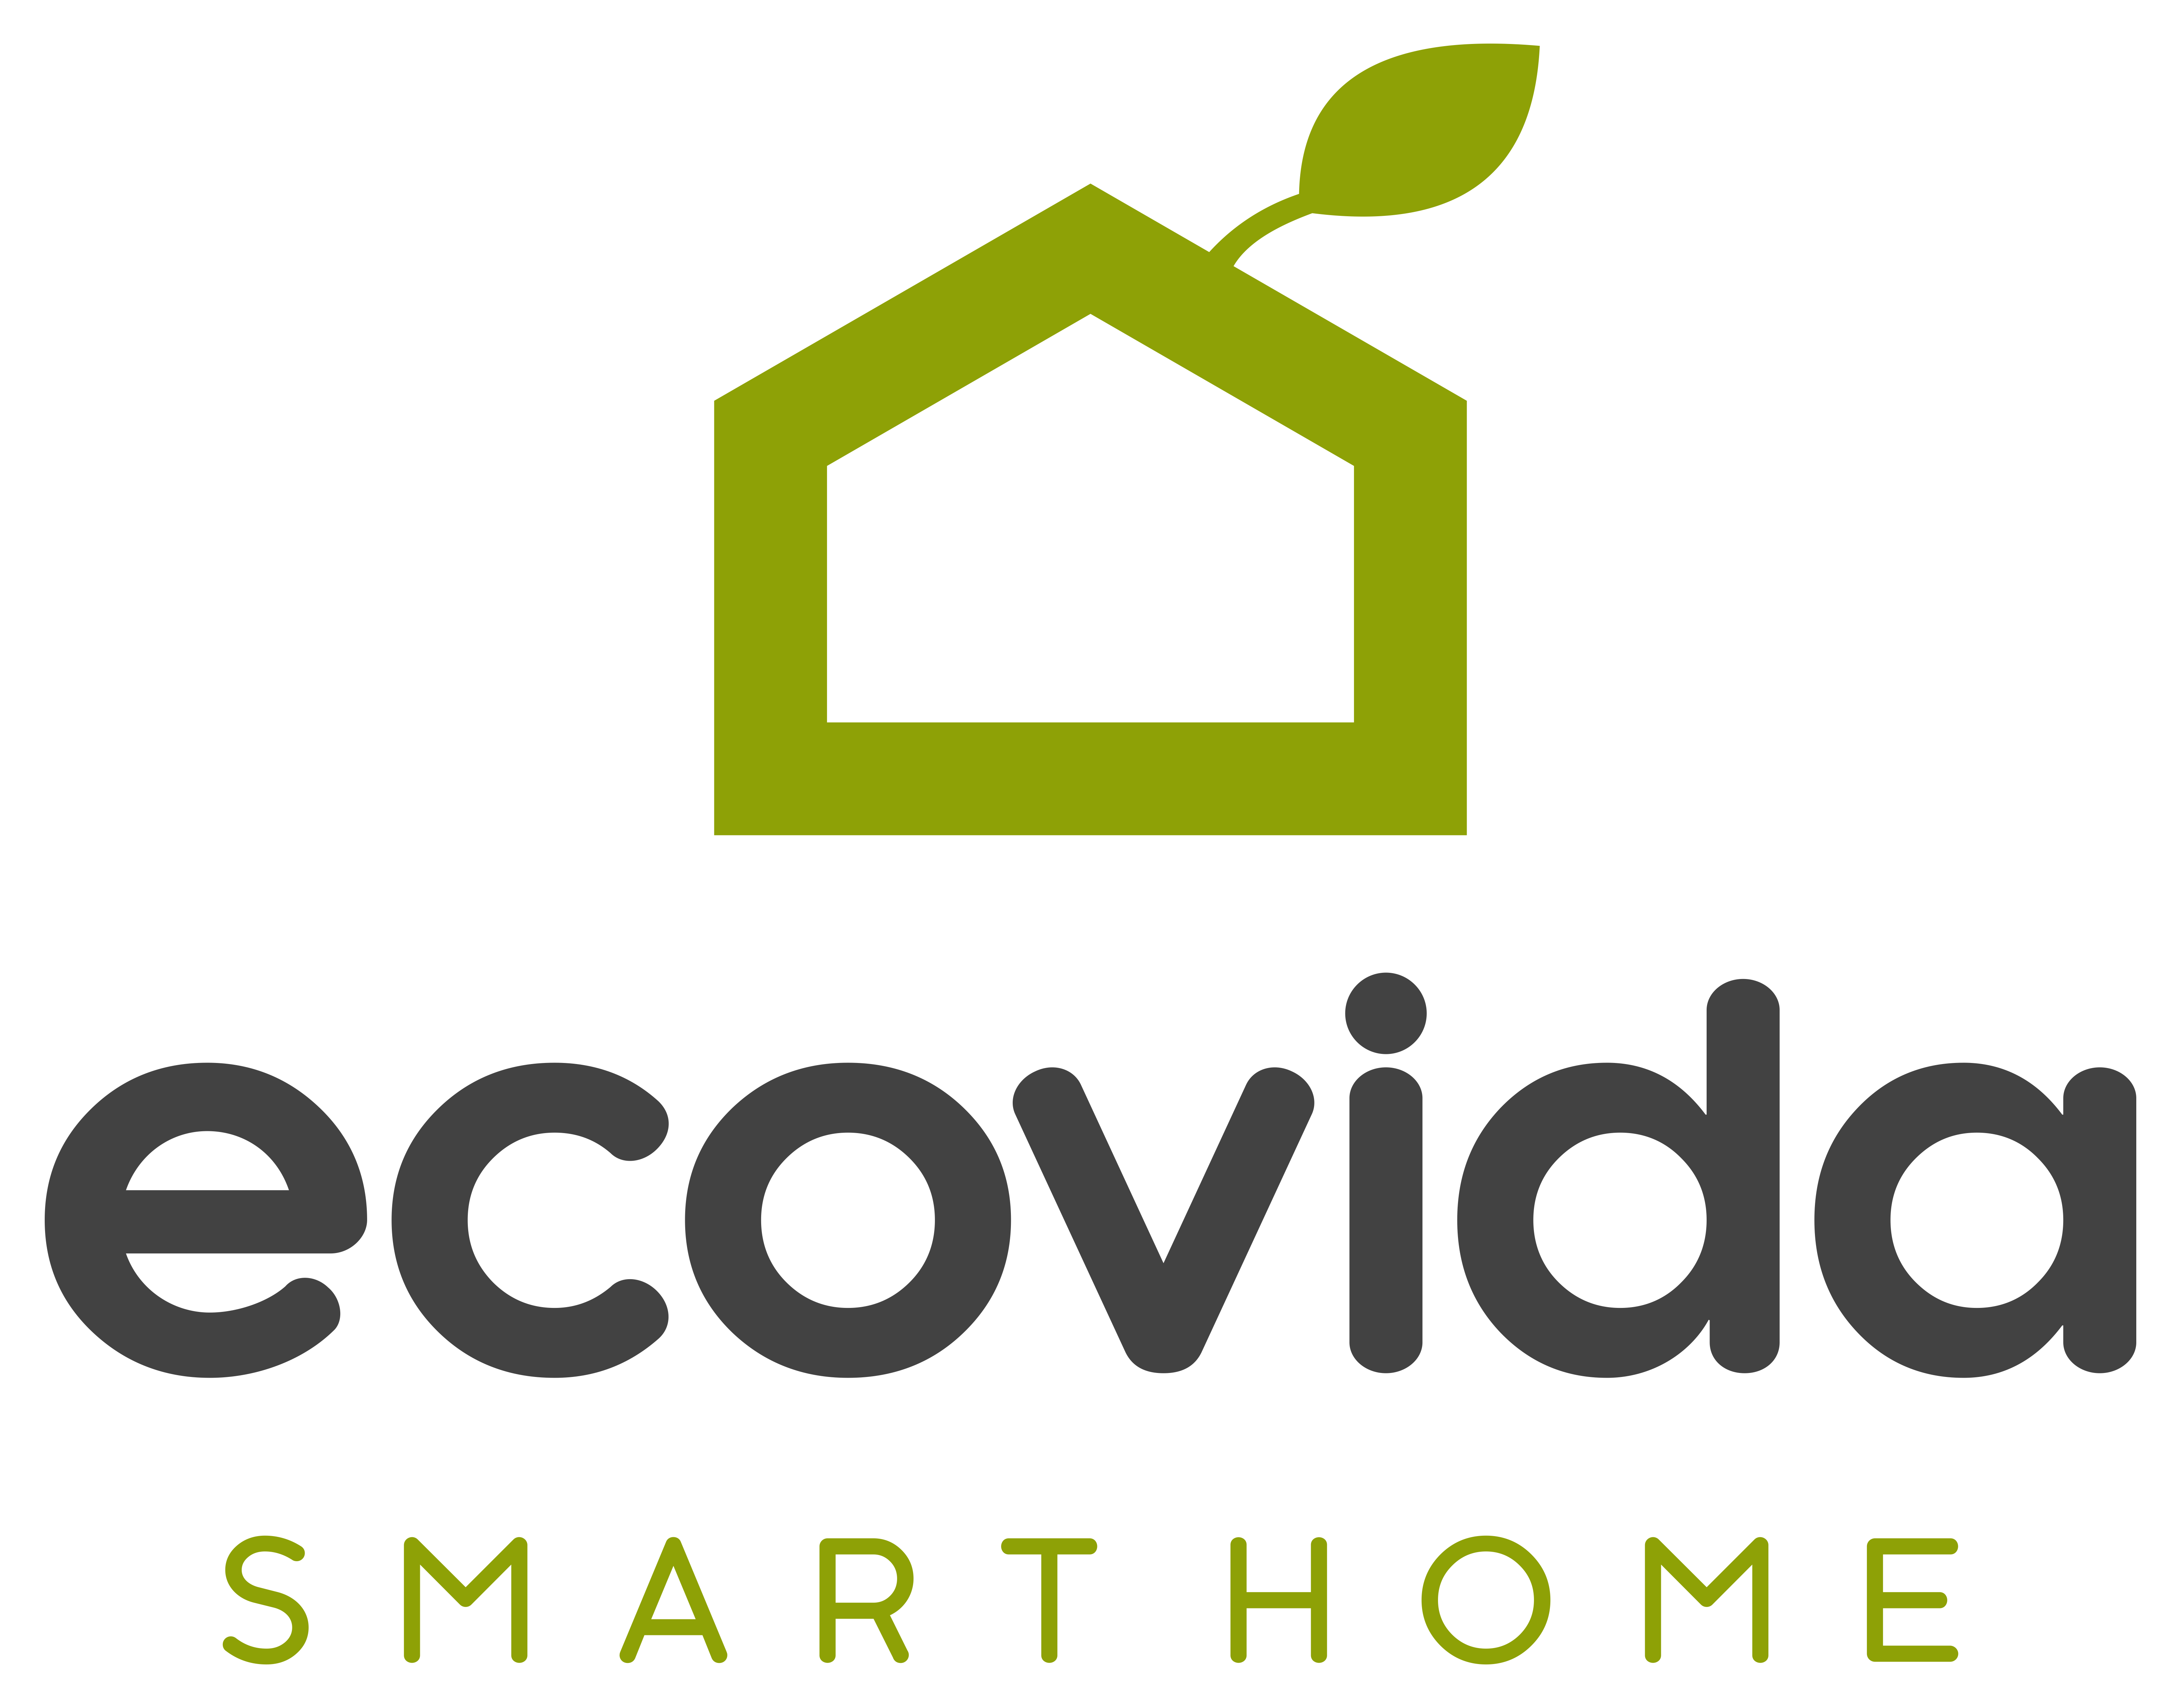 Create a modern, upscale logo for an energy-efficient home builder